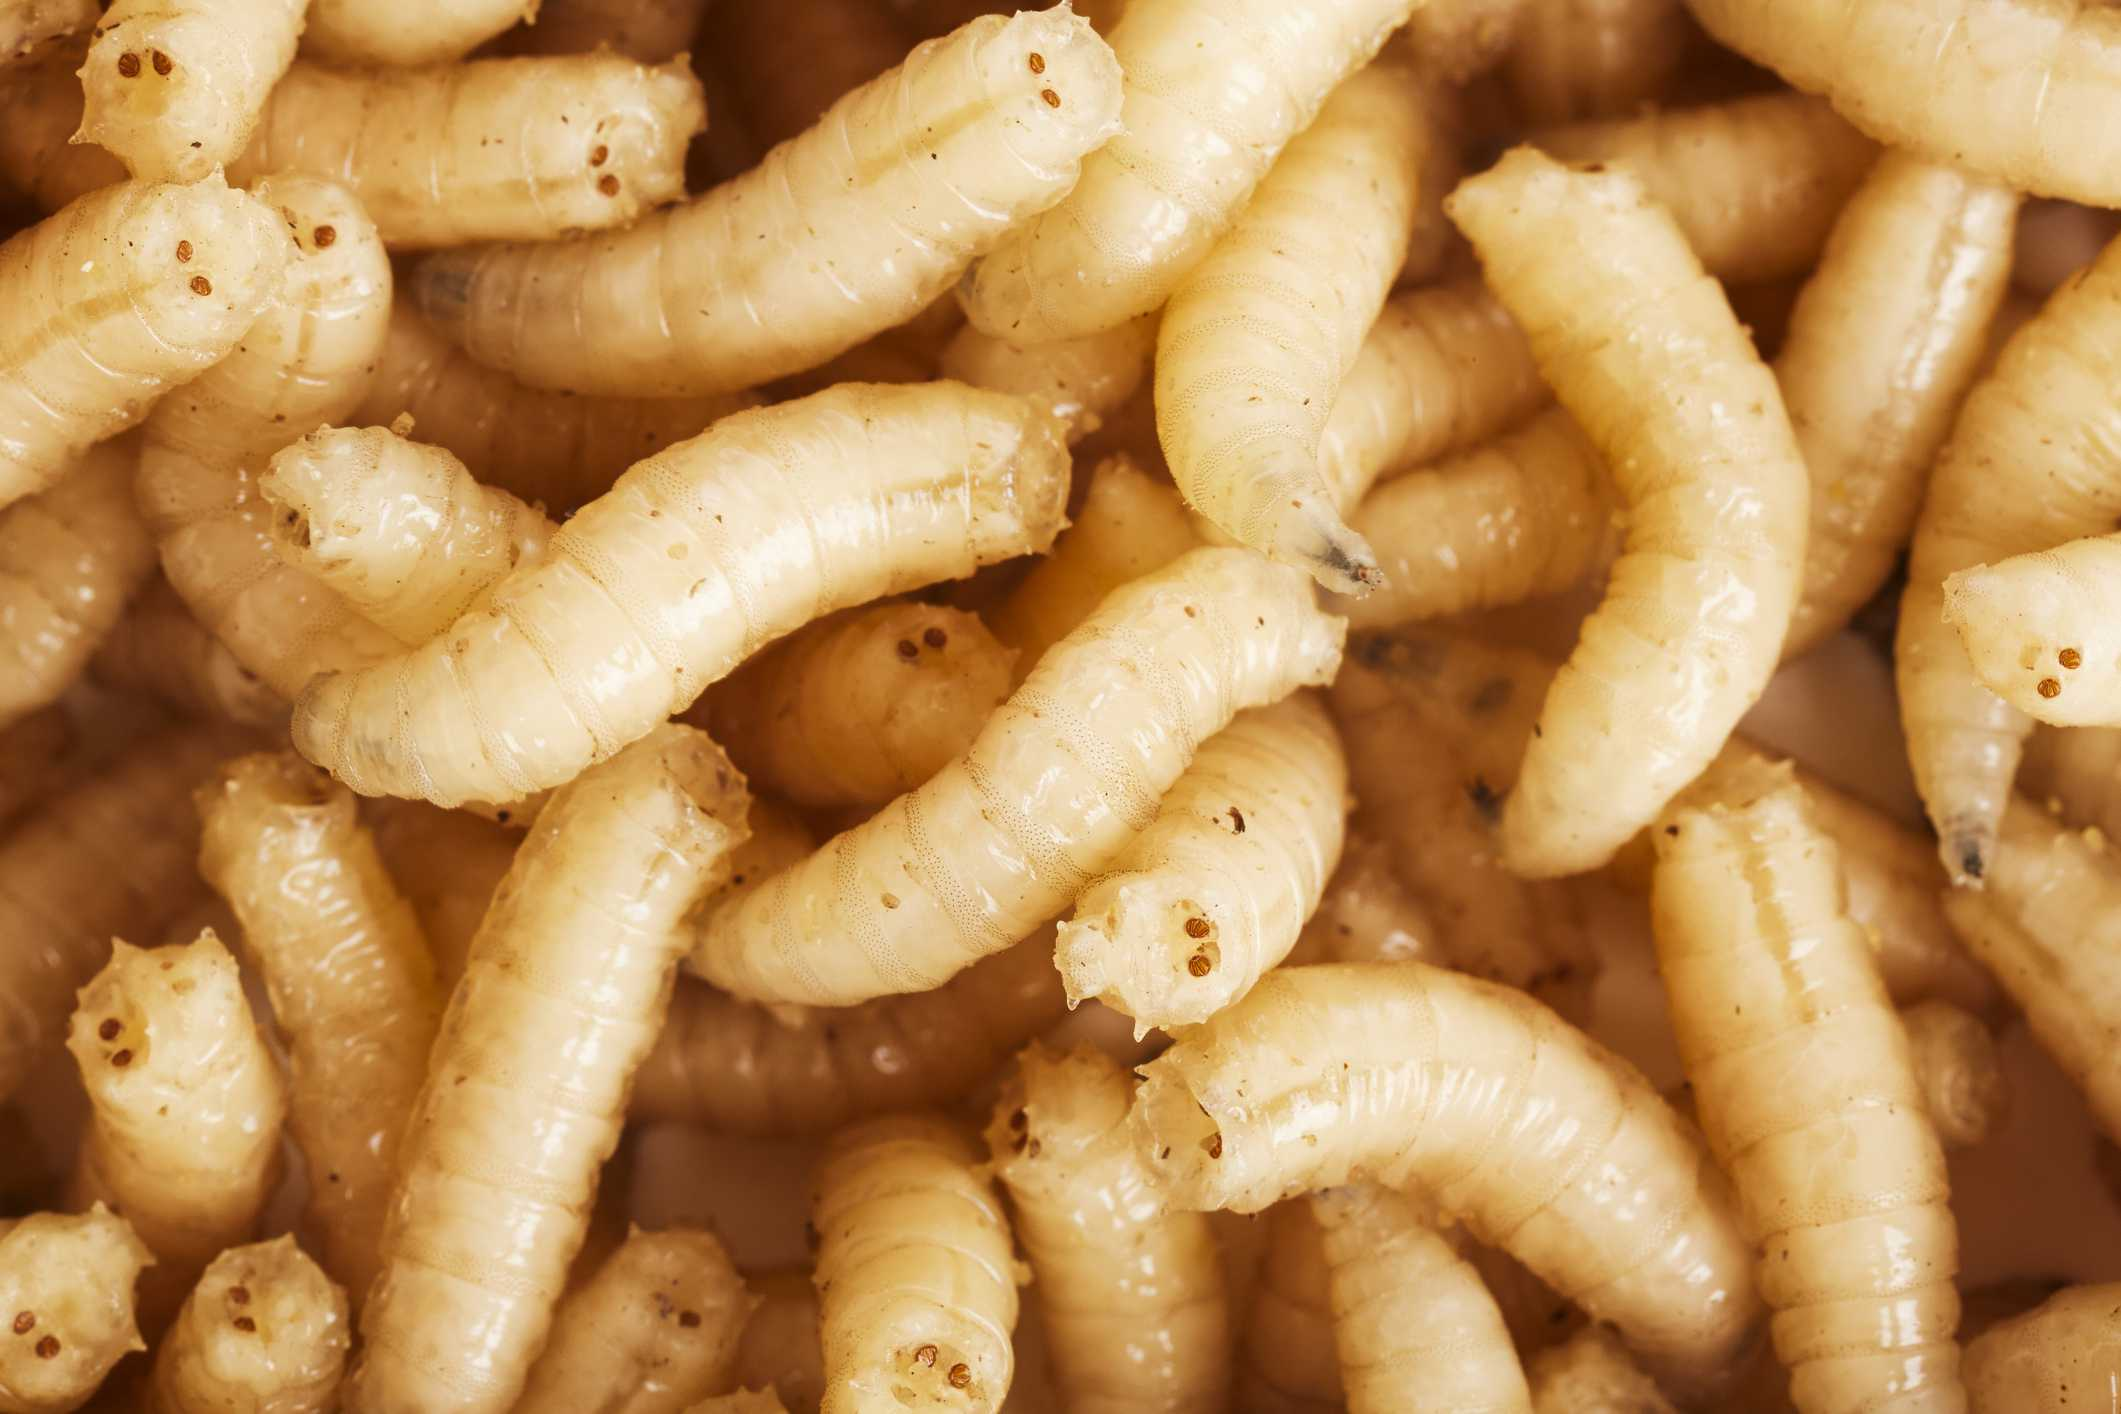 The 5 Forms Of Insect Larvae